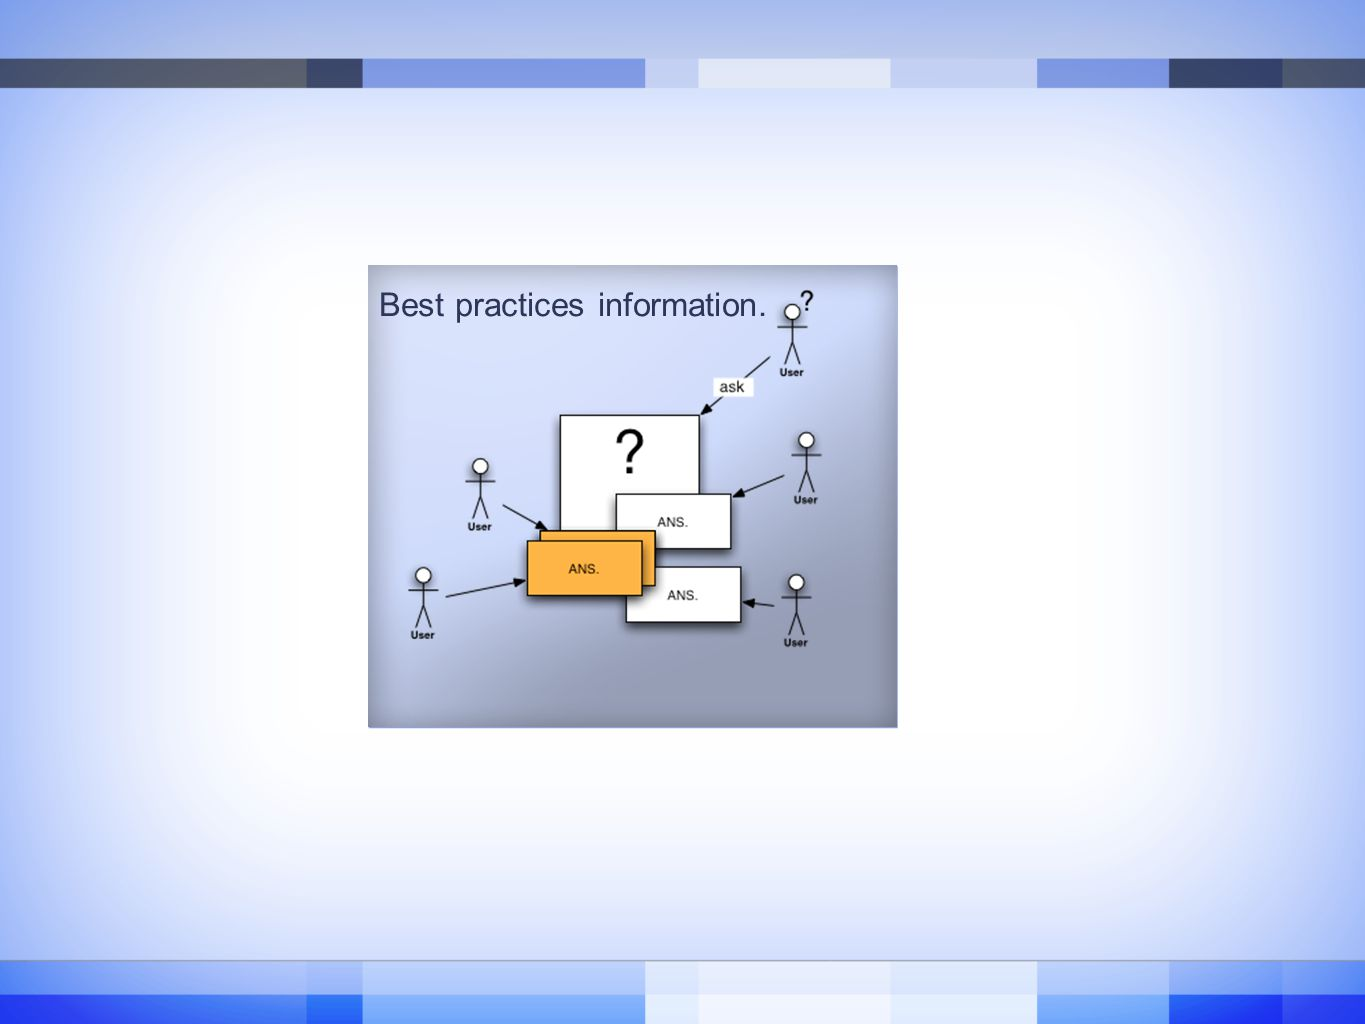 Best practices information. 9